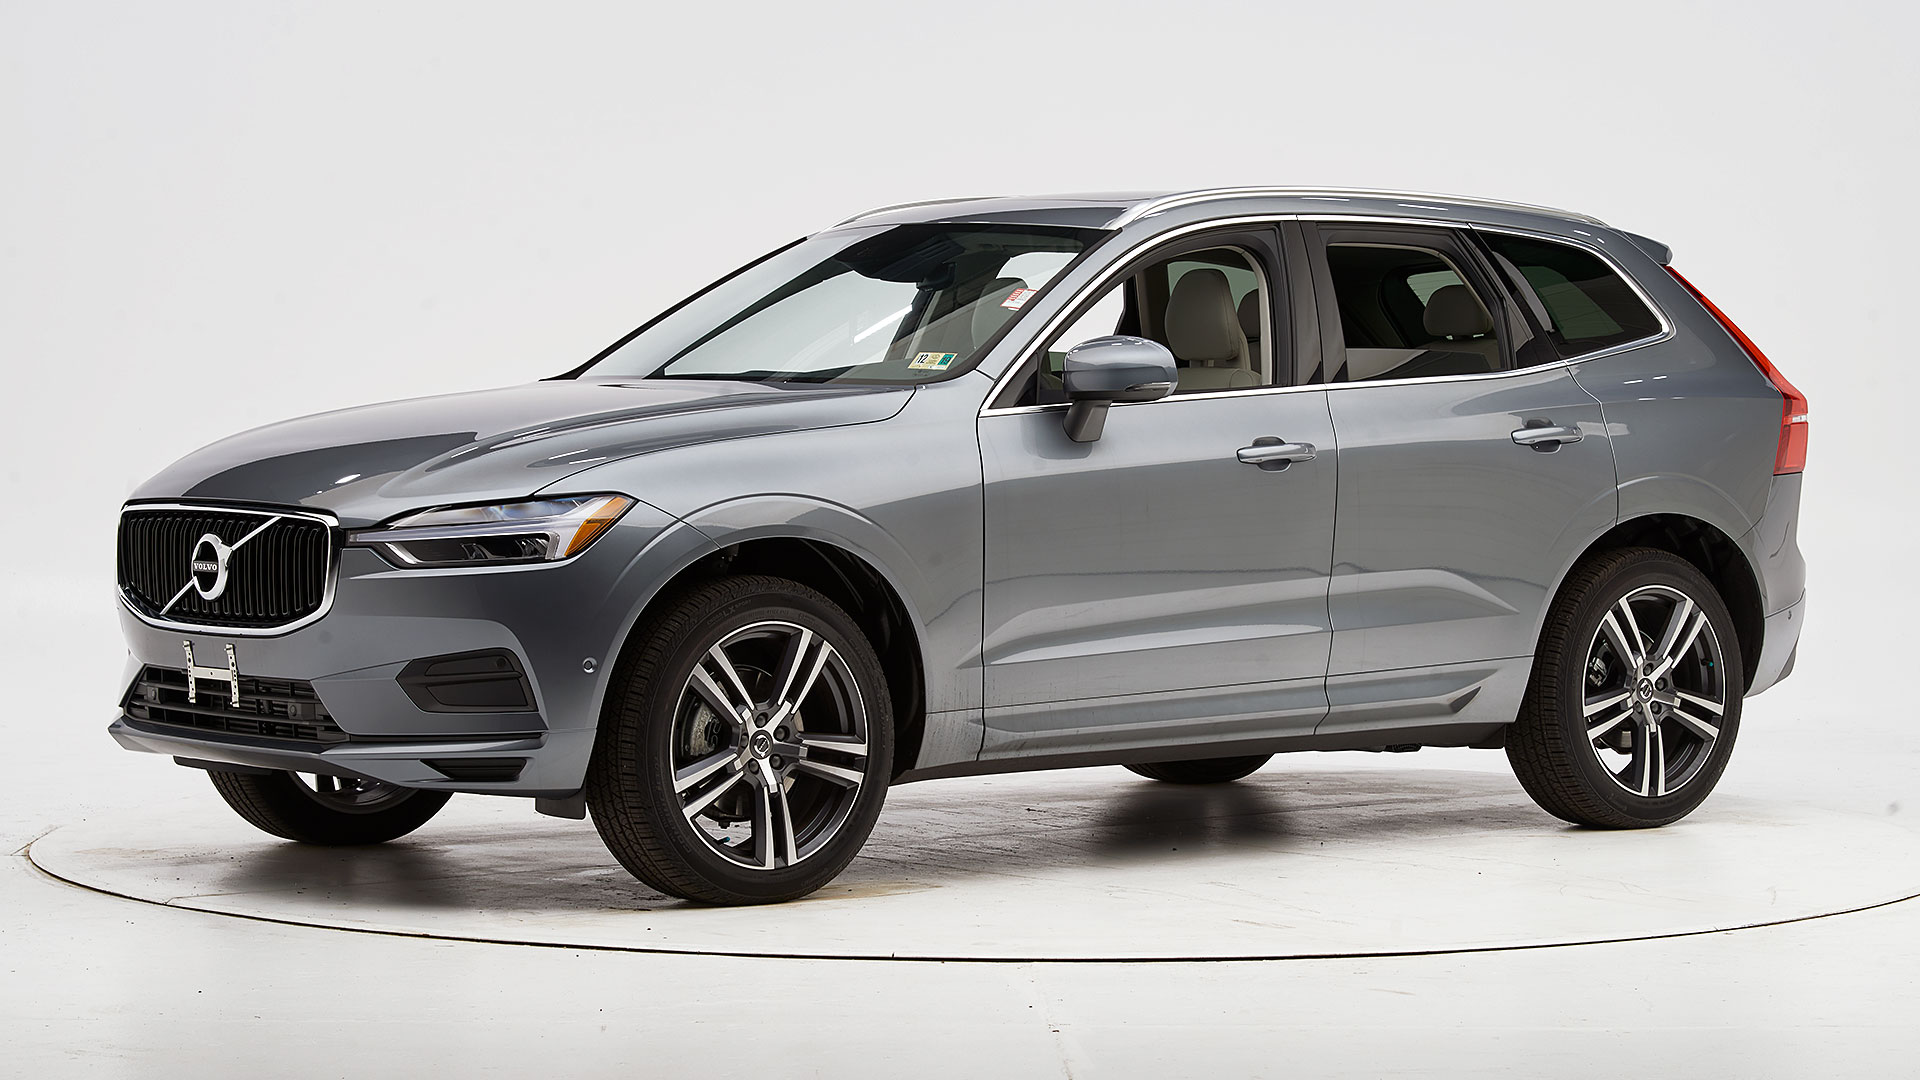 2020 Volvo XC60 4-door SUV